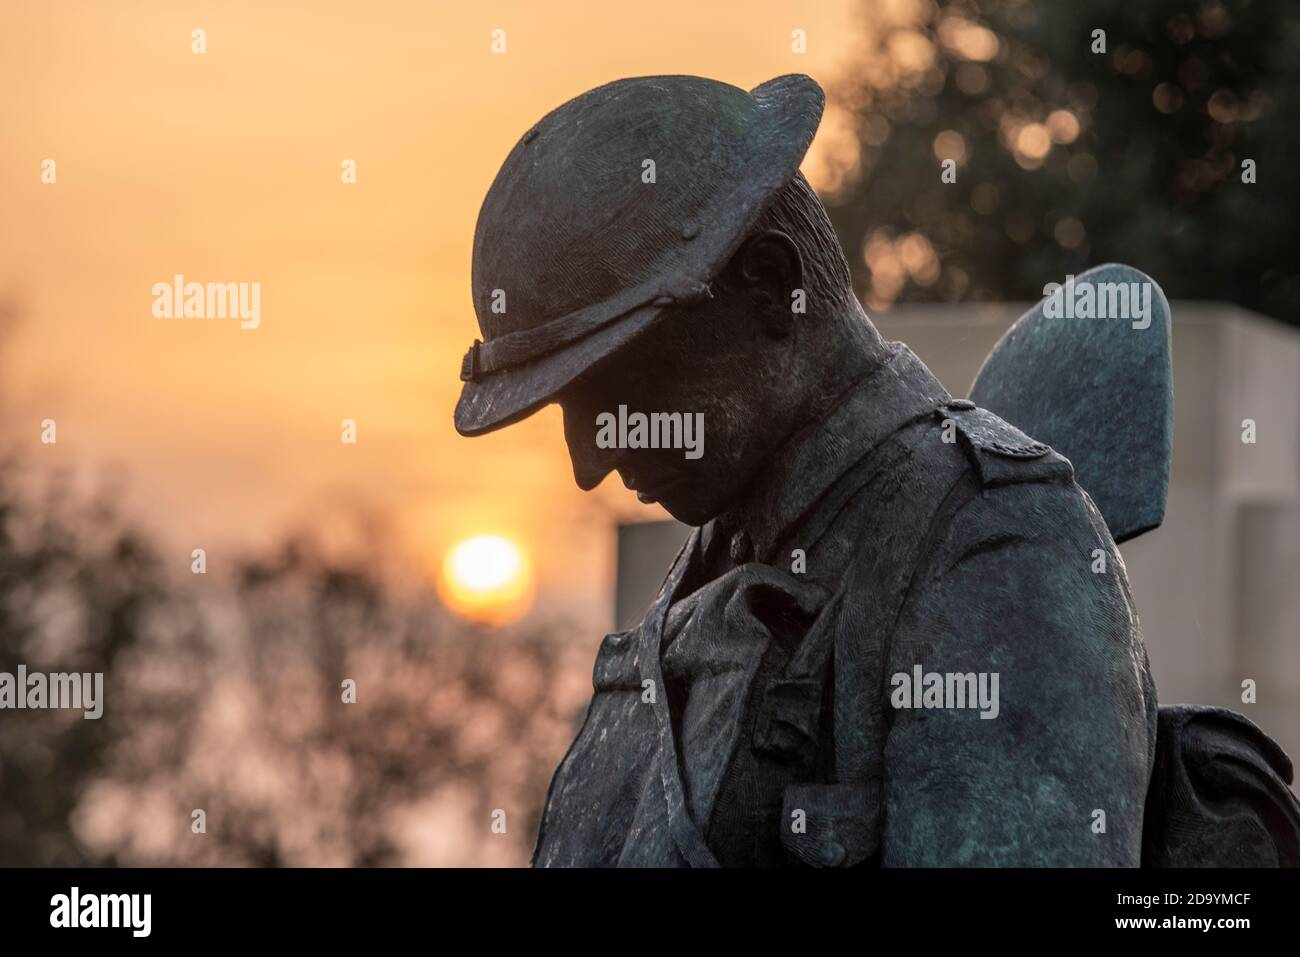 sunrise-on-remembrance-sunday-2020-at-the-southend-war-memorial-2D9YMCF.jpg